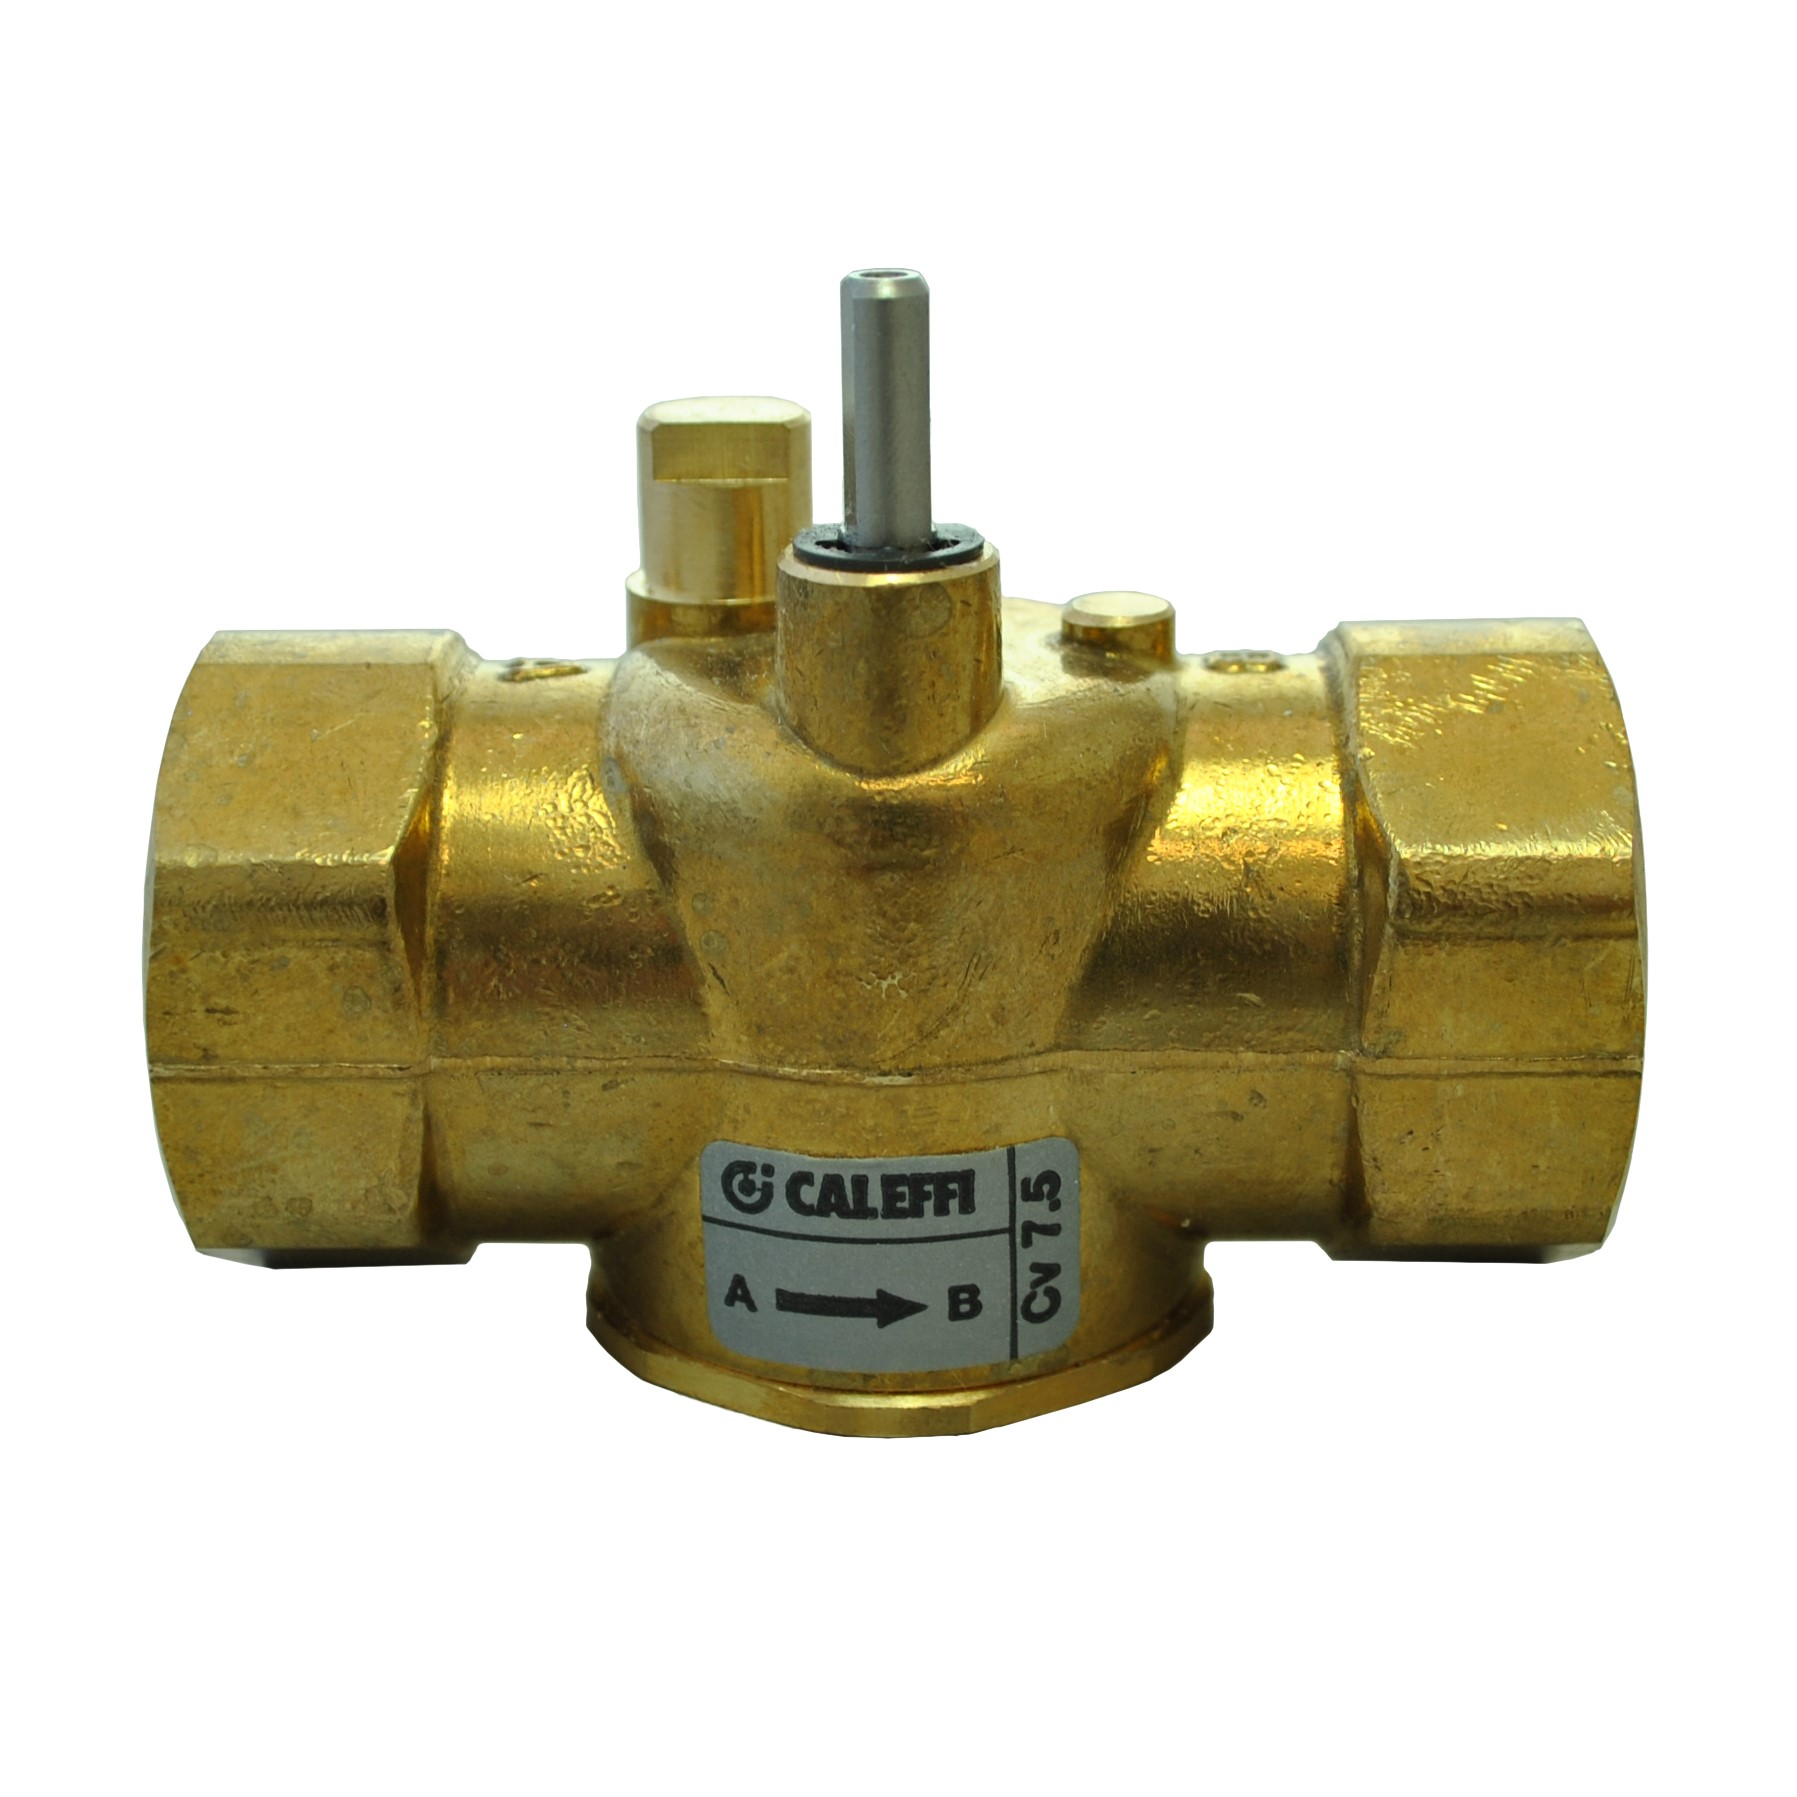 "Caleffi Z-one - 1"" NPT 2-way Straight Valve Body for Motorized Zone Valves"